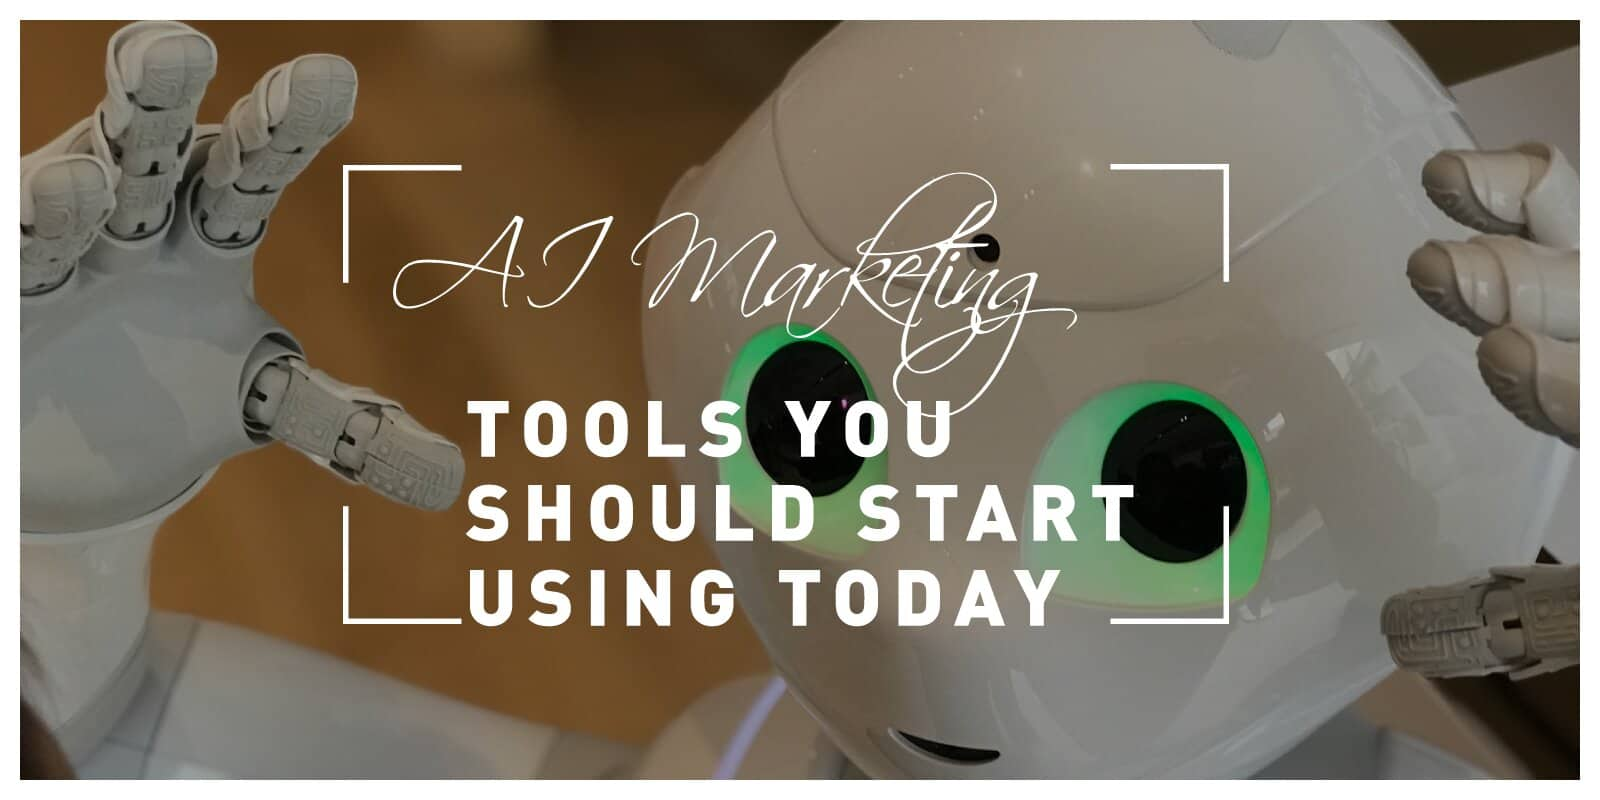 AI Marketing Tools You Should Start Using Today: Take Advantage of Advanced Technology to Achieve Great Success